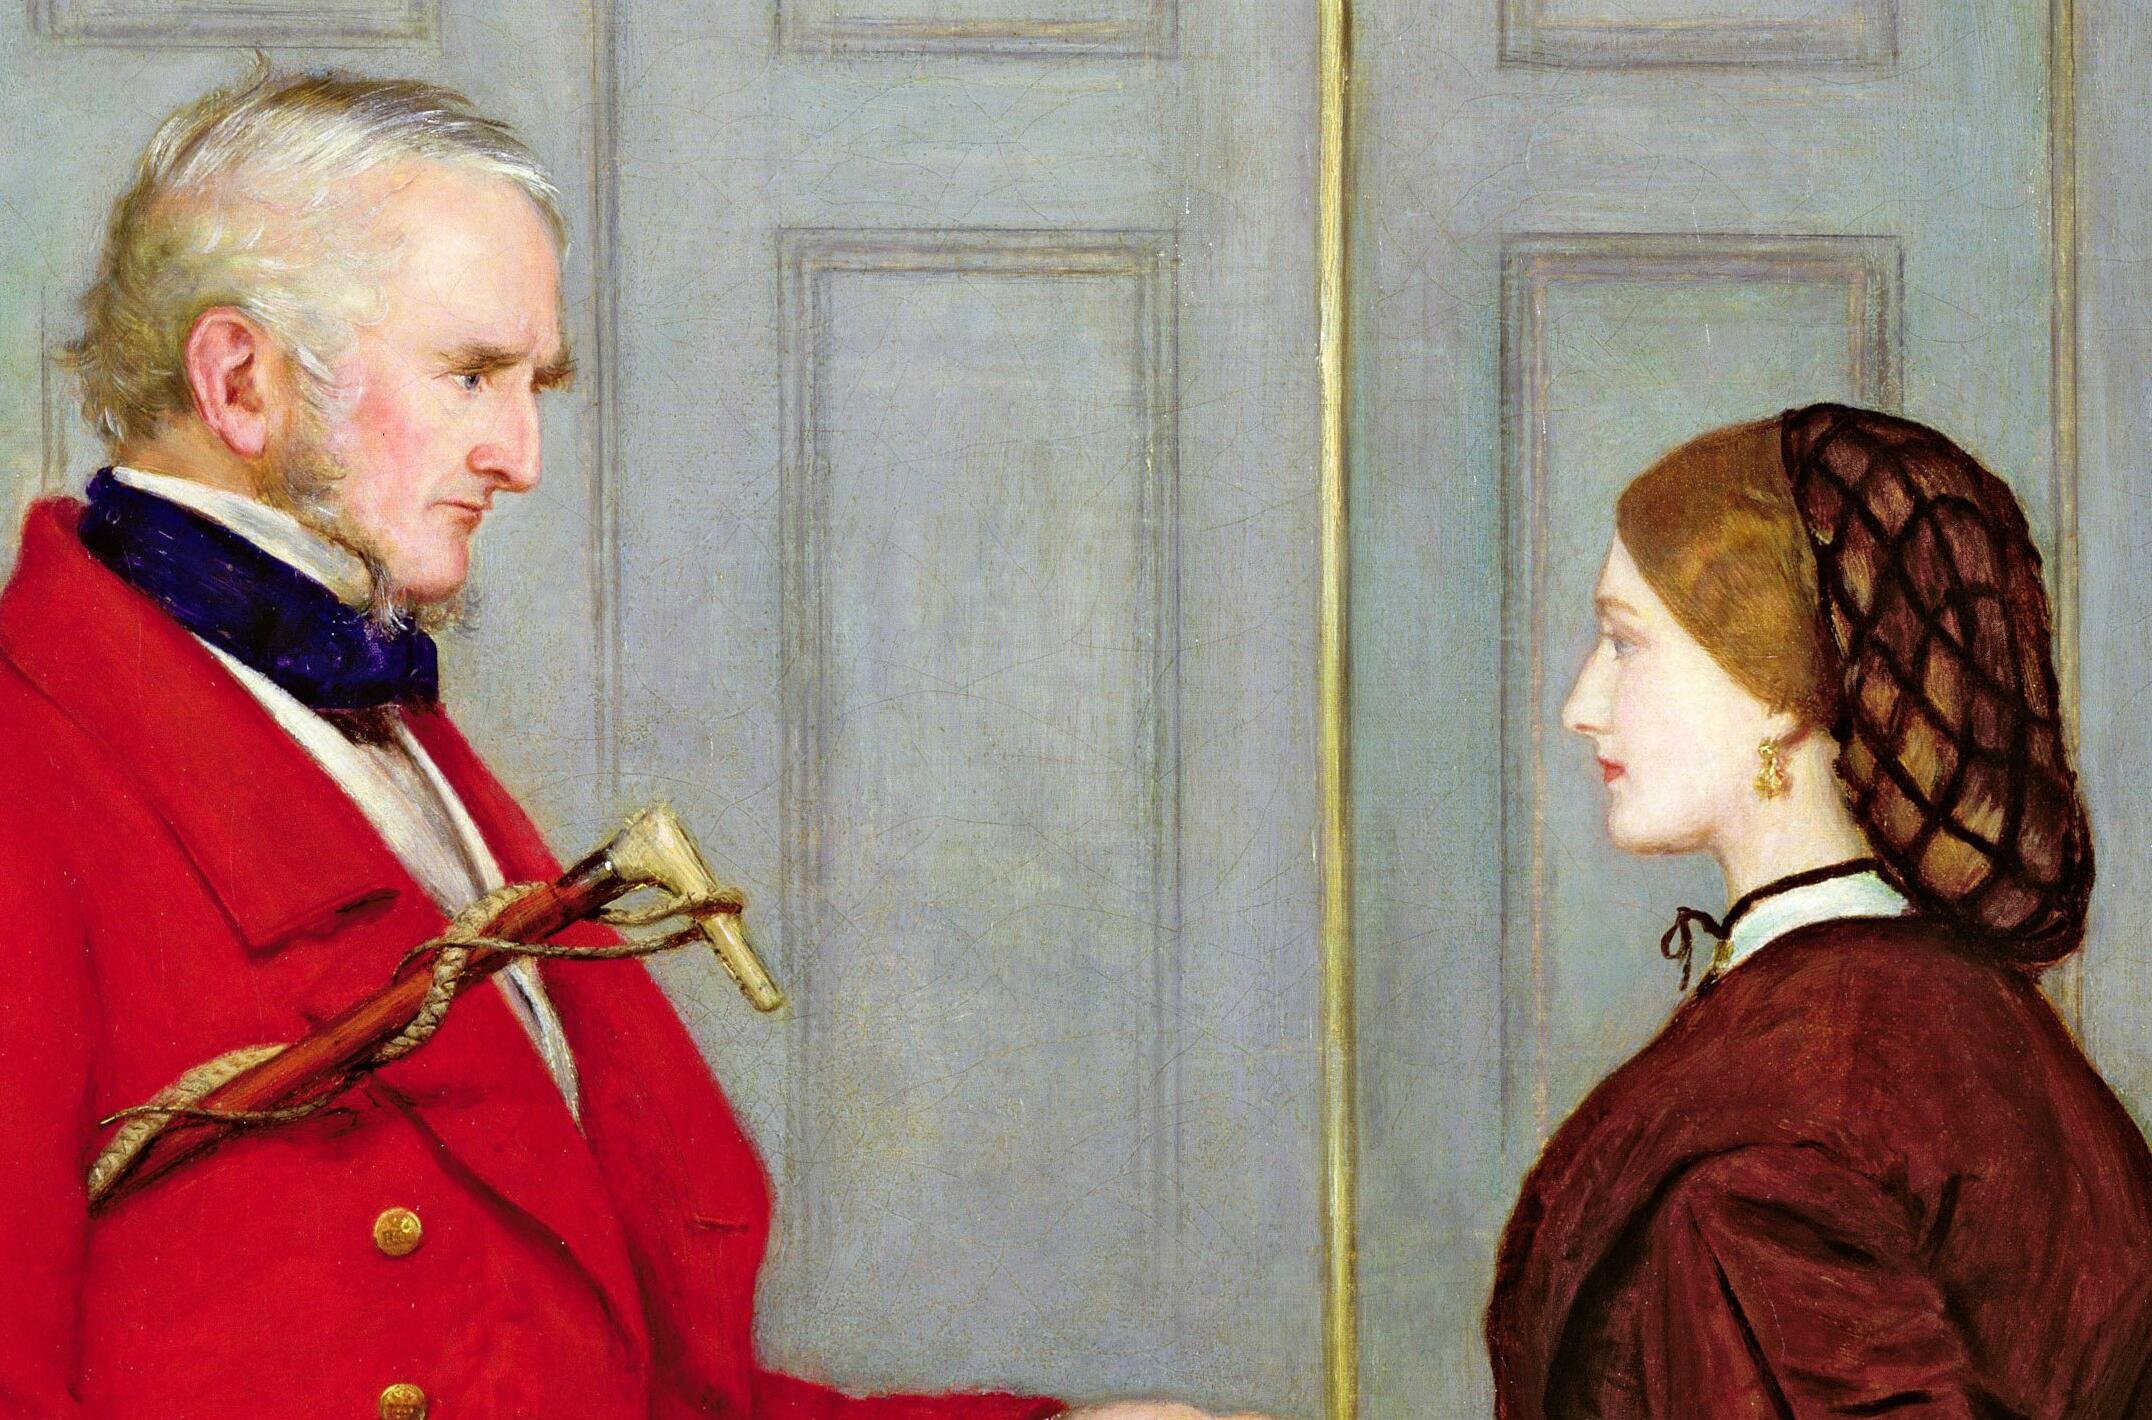 John Everett Millais, <i>Trust Me</i>, 1862, oil on canvas, 111.7 x 77.4 cm. Private Collection. Photo The Fine Art Society, London, UK | Bridgeman Images (All rights reserved).